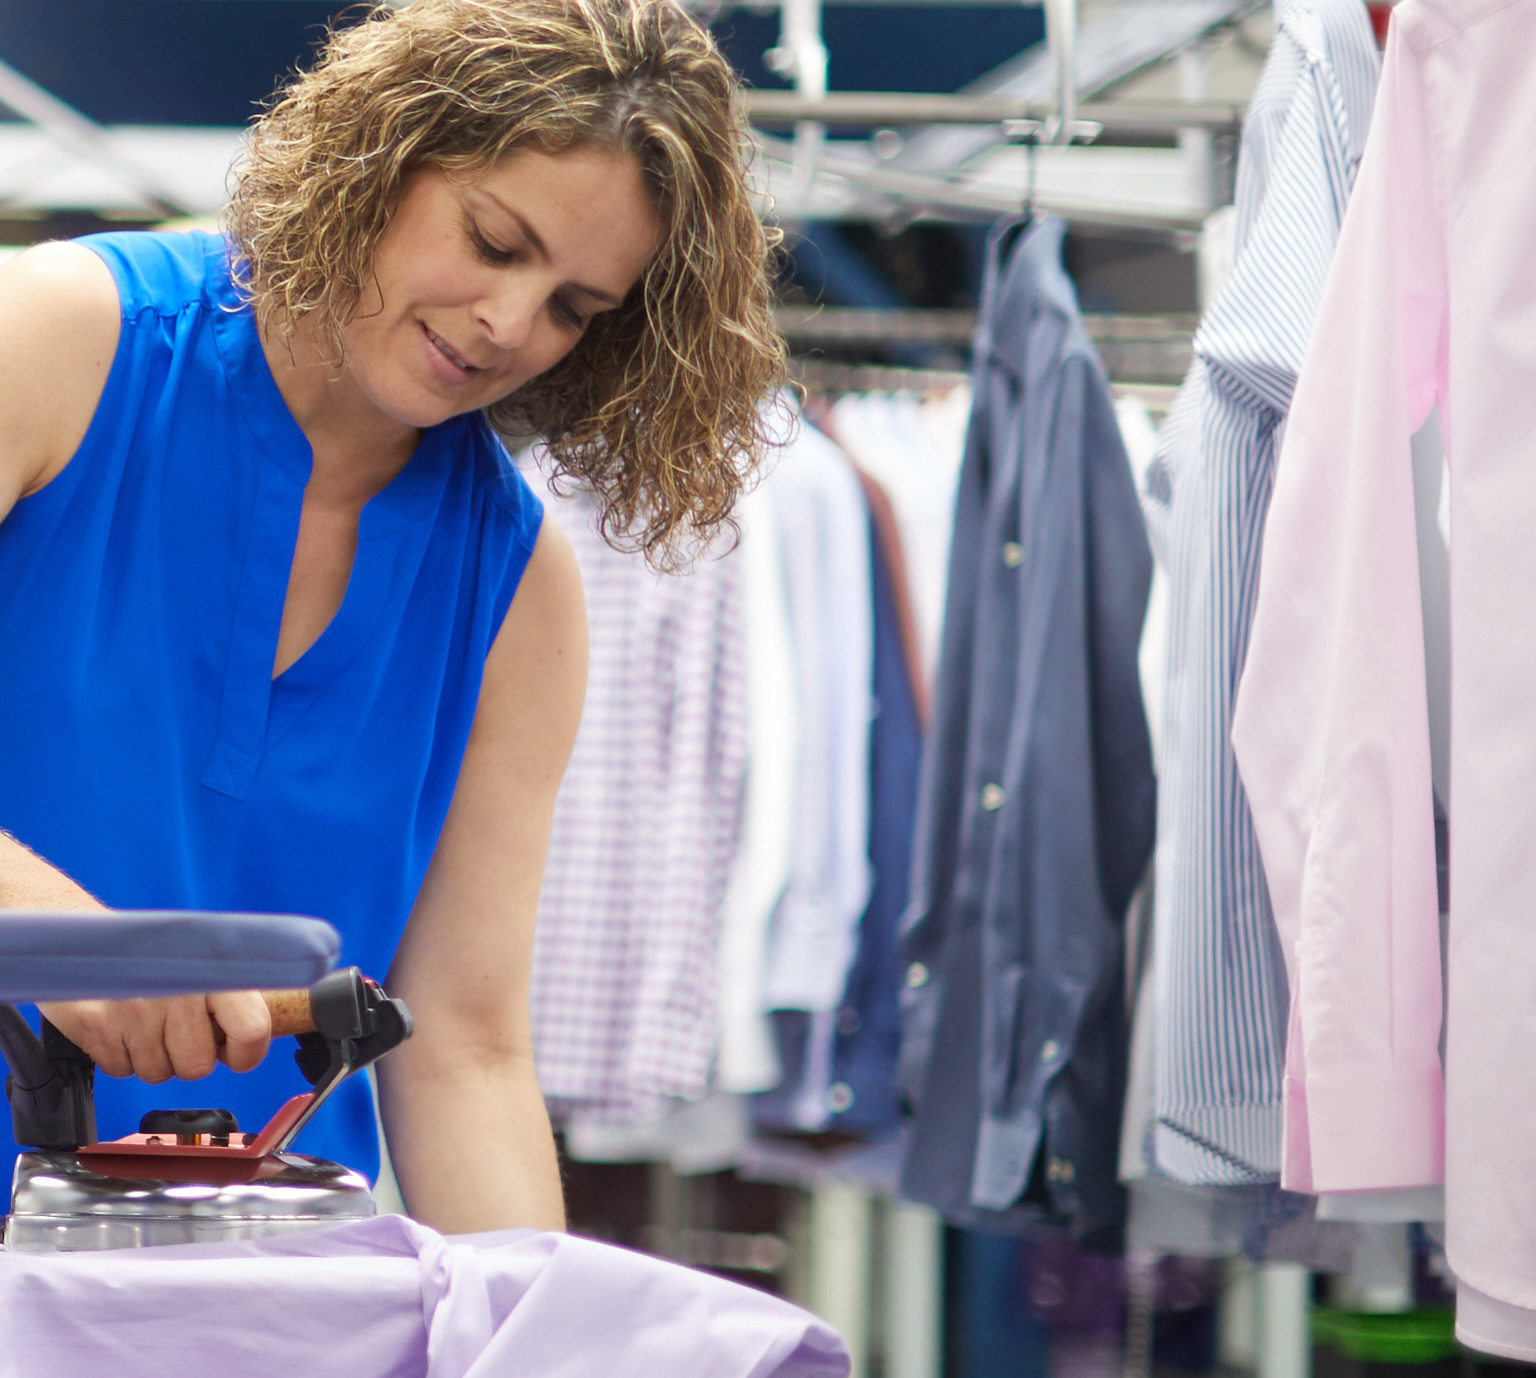 our expertise - Trust Peninou to clean, tailor and maintain your fine apparel, including shirts and blouses, fine suits, trousers, cashmere and knits, dresses, couture fashion, outerwear, furs and leather goods, silk and lace lingerie, neckties and pocket squares.